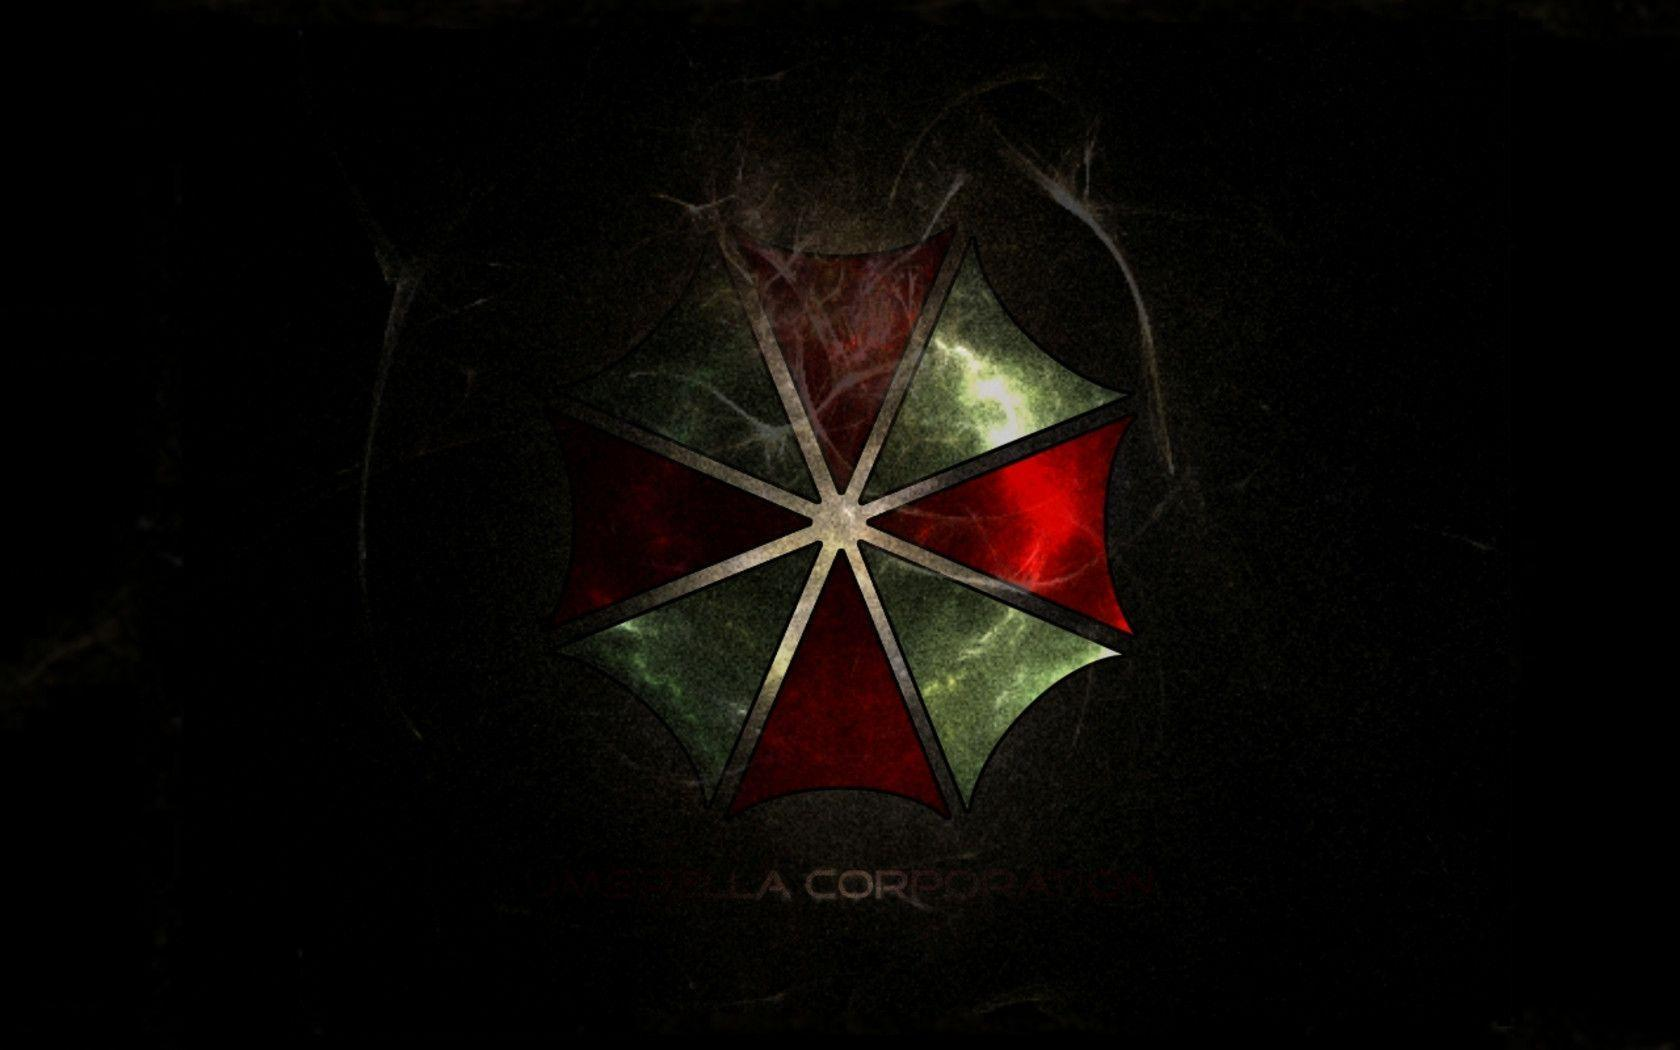 umbrella corporation logo Computer Wallpapers, Desktop Backgrounds